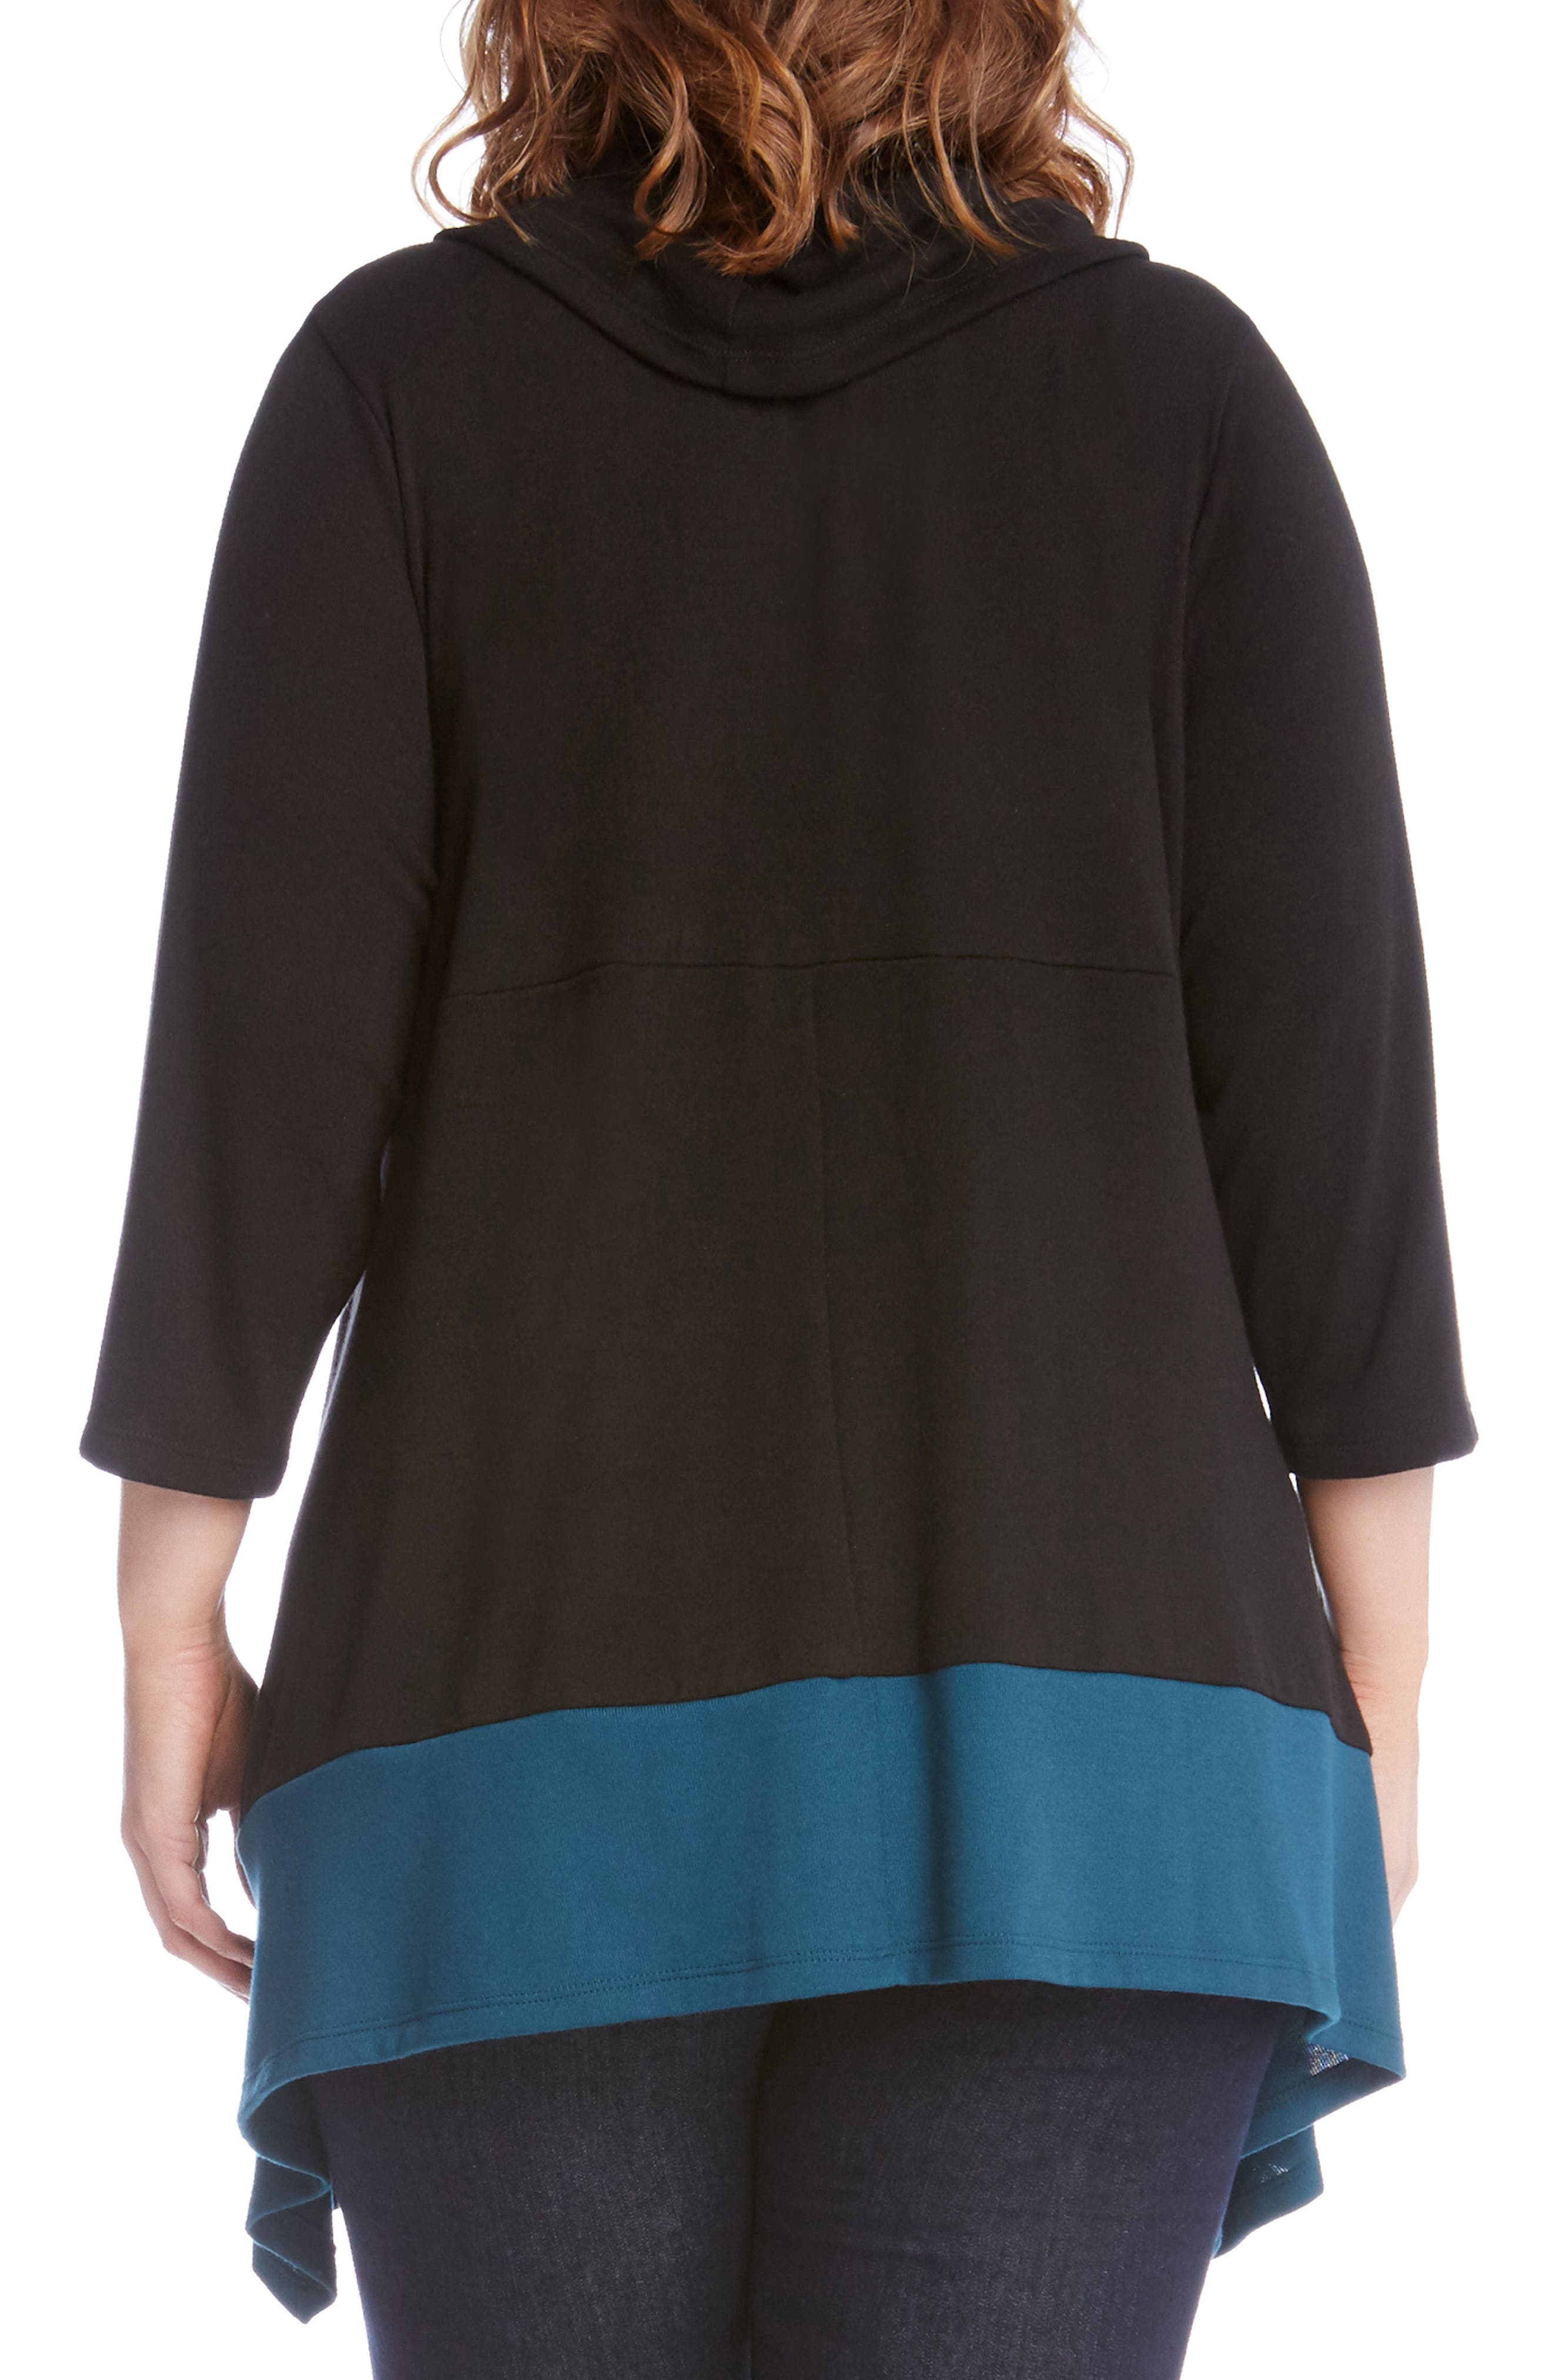 Colorblock Hem Sweater,                             Alternate thumbnail 2, color,                             Black With Teal